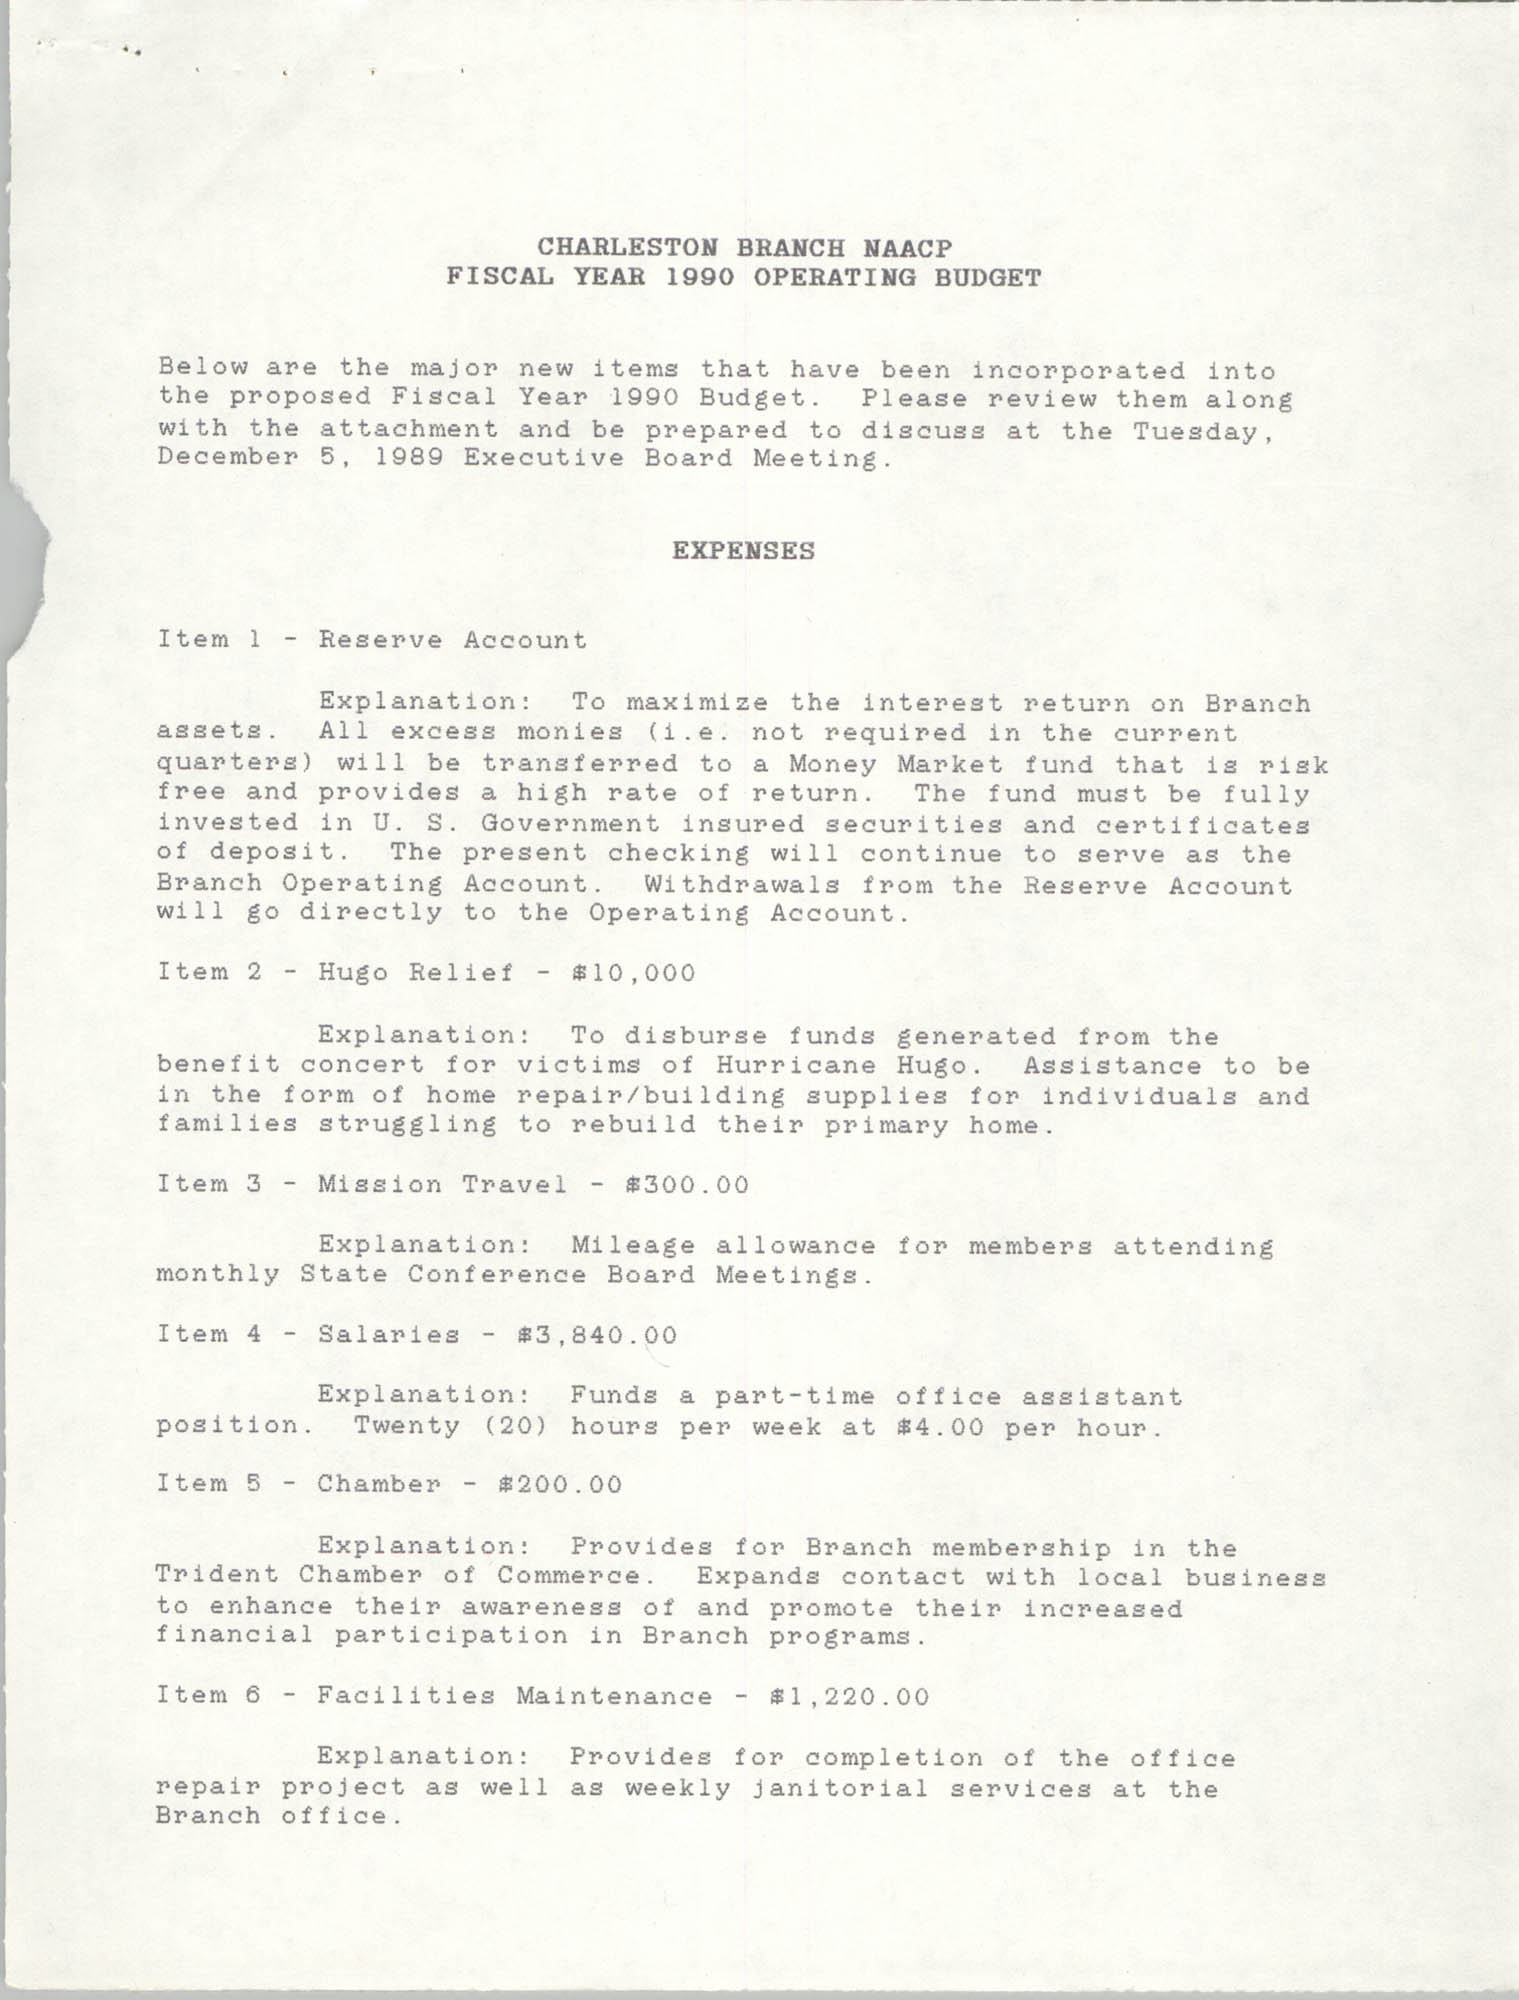 Charleston Branch of the NAACP Fiscal Year 1990 Operating Budget